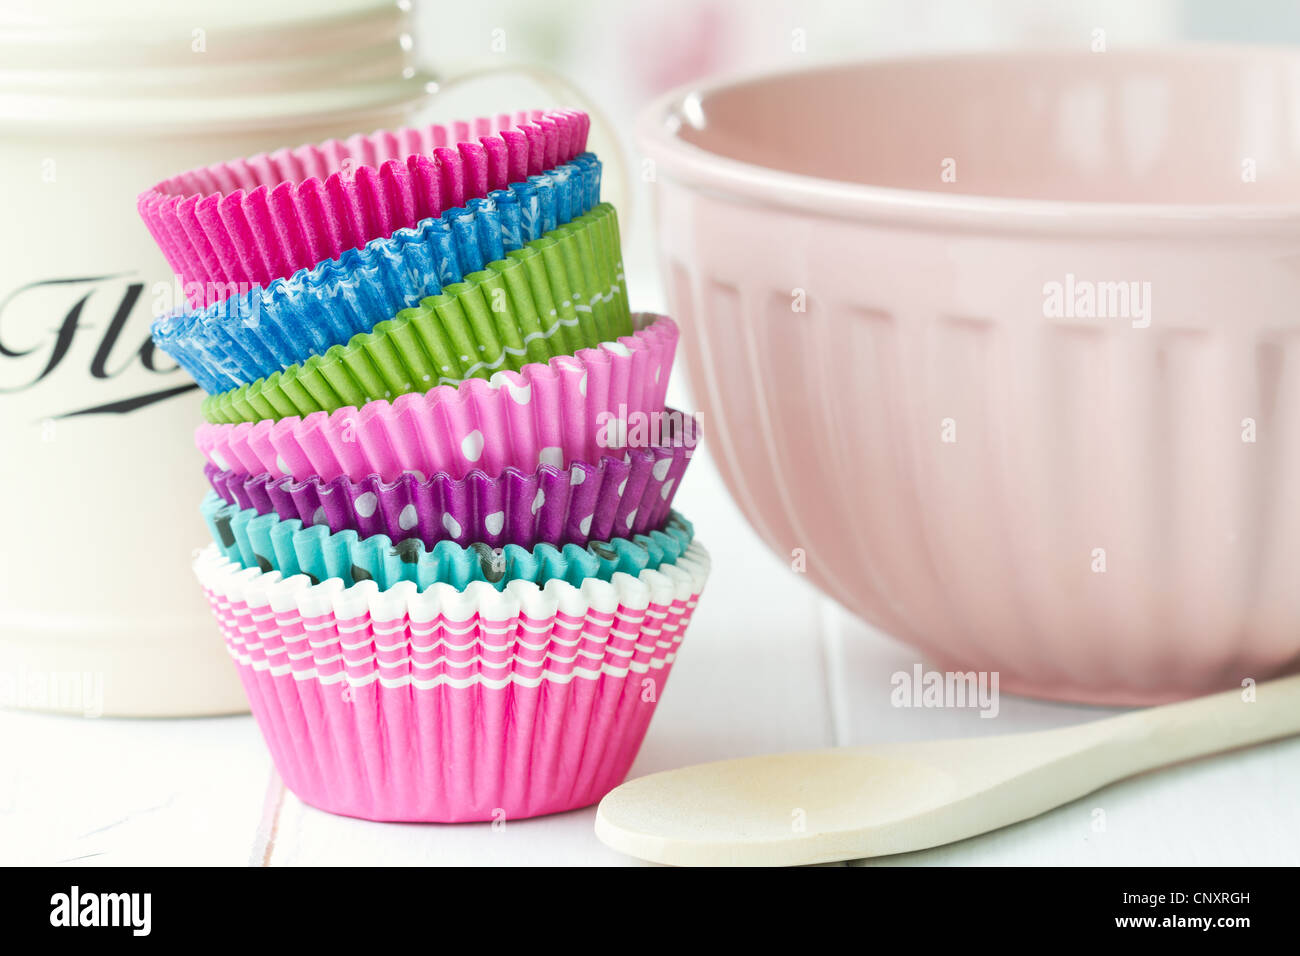 Cupcake cases - Stock Image